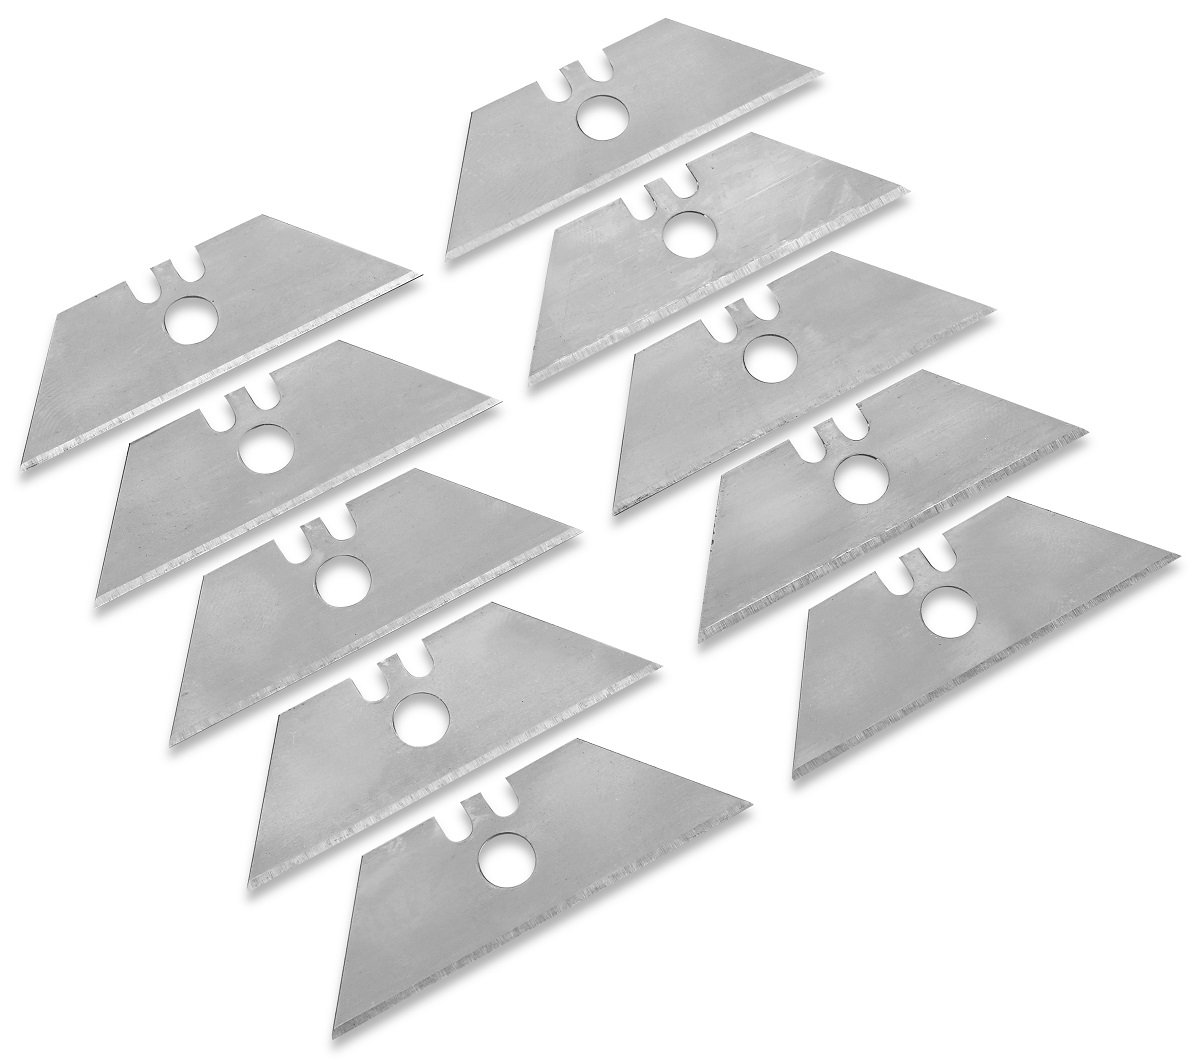 10 Pack Utility Knife Blades- 2 3/8 X 3/4 X 2 3/8 Inch Edge- For All Standard Utility Knife Handles- For All General Purposes, Cutting Boxes, Plywood, Leather, Plastic, And Sheetrock. - By Katzco